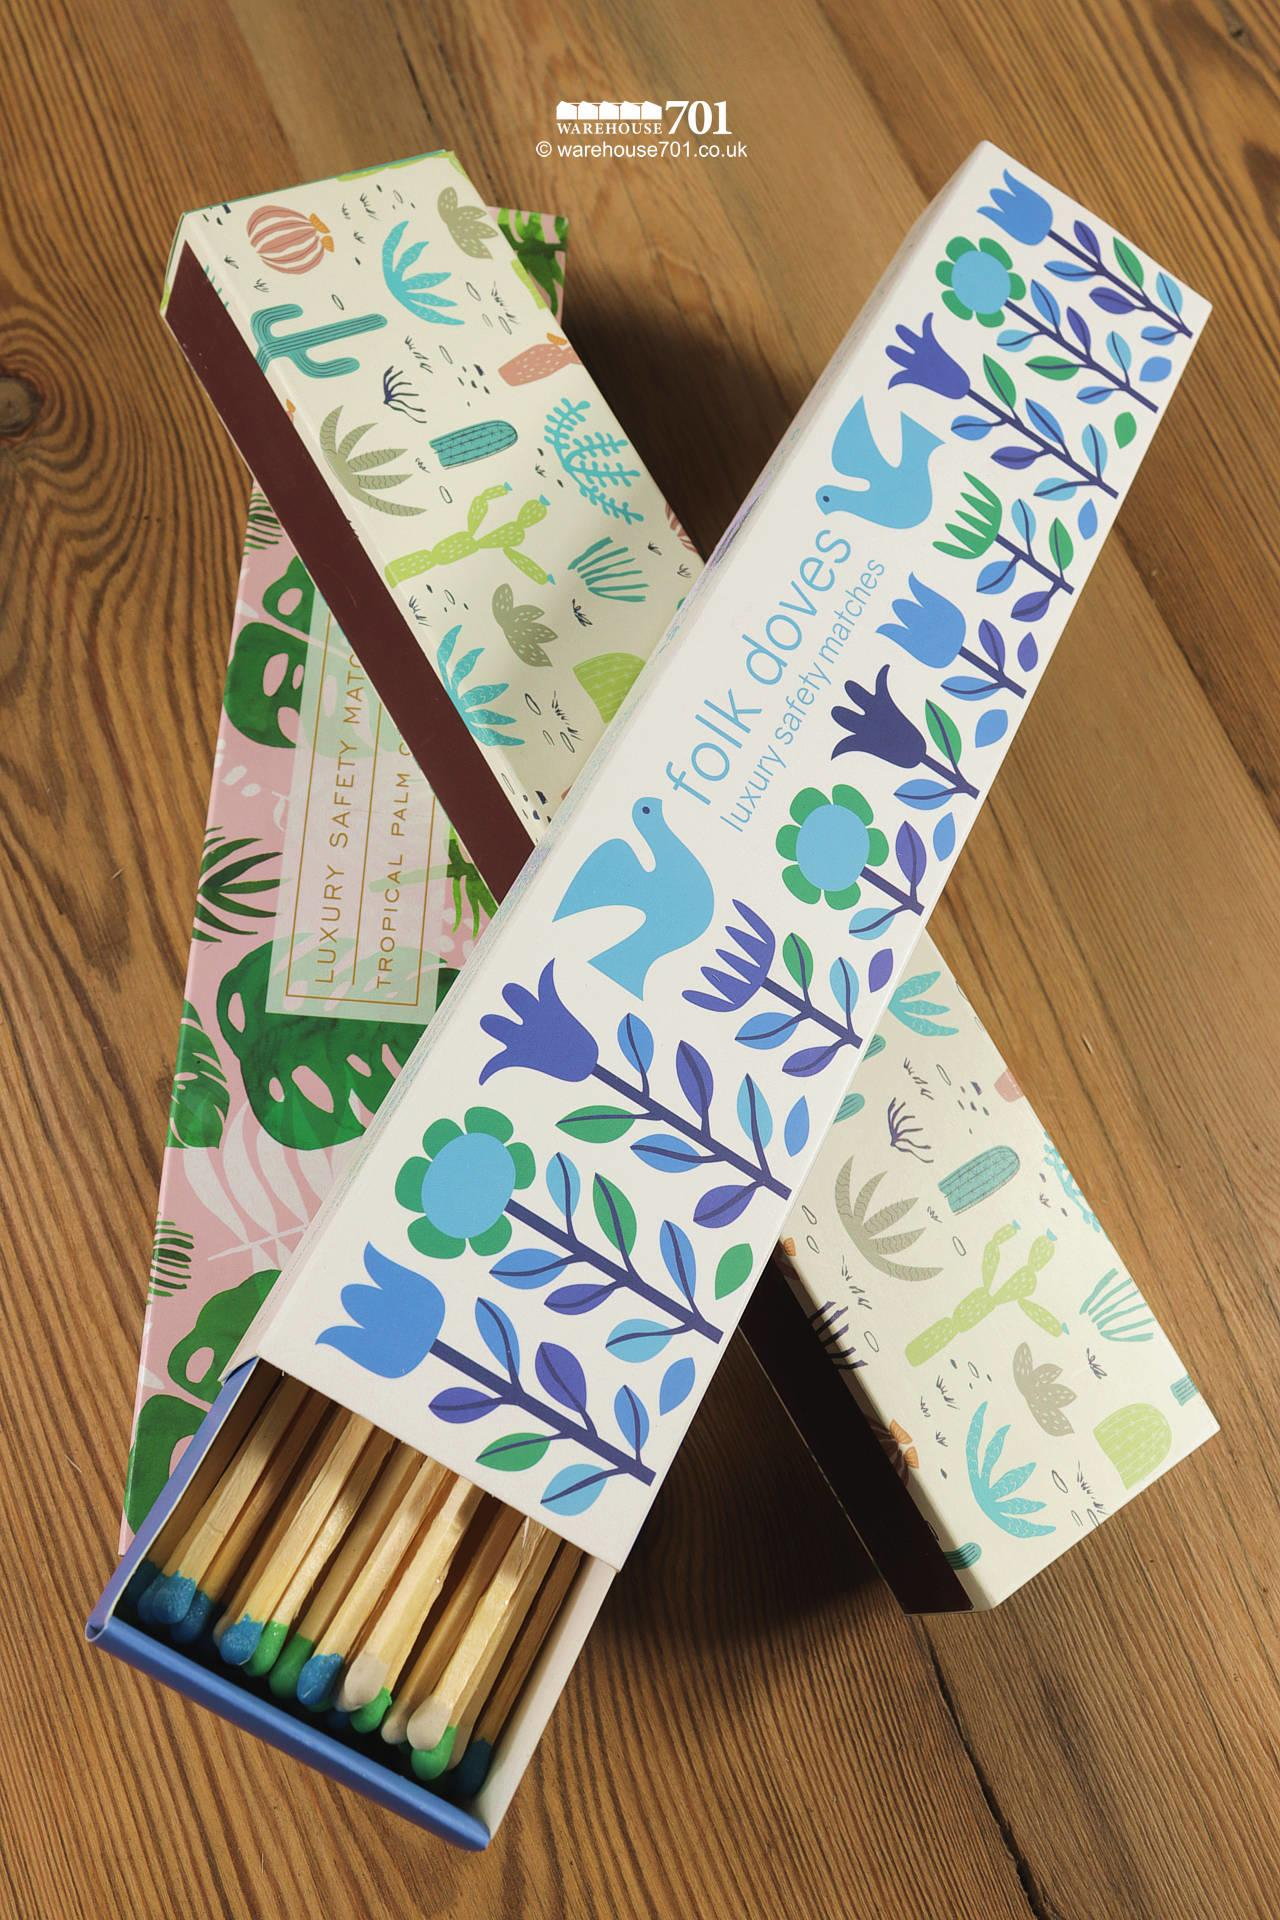 Decorative Boxes of Very Long Matches #1